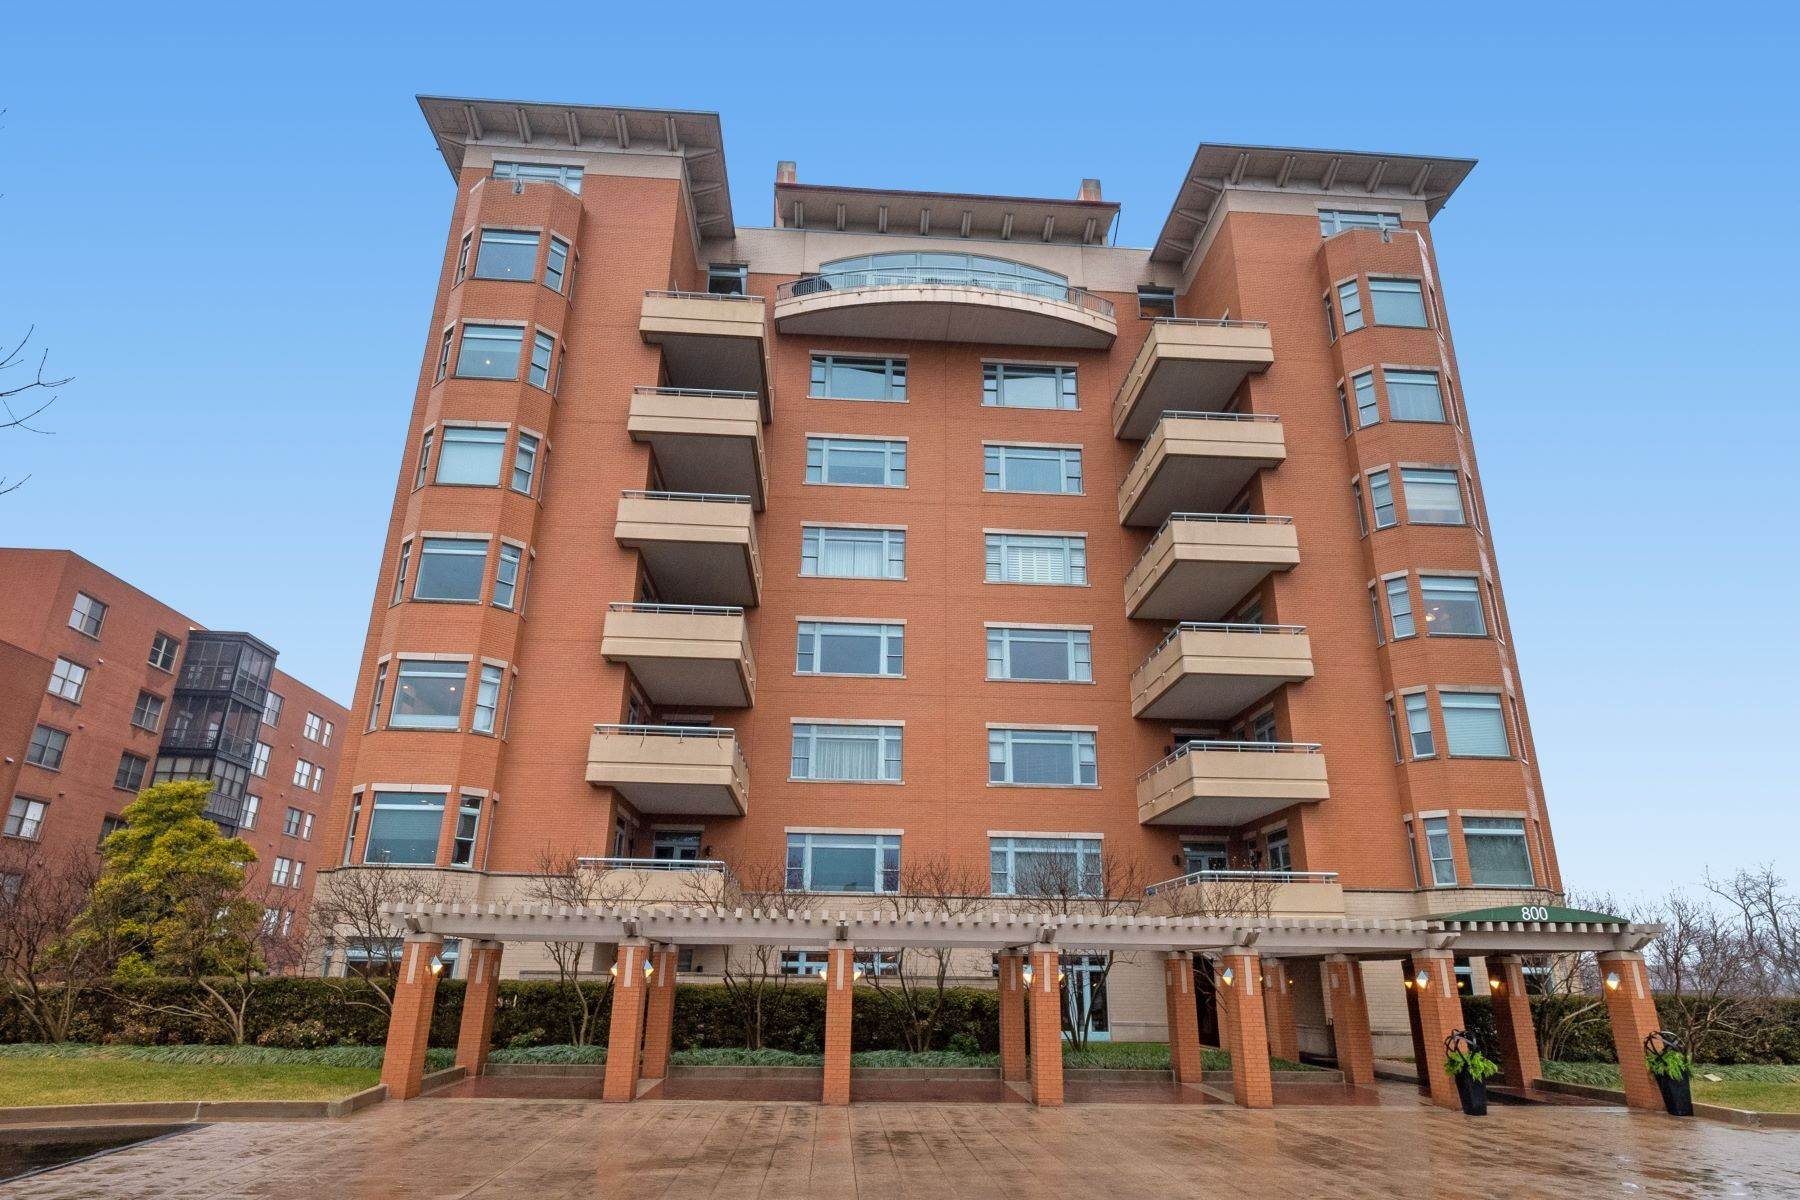 Property for Sale at Gorgeous Clayton Condo with Private Balcony 800 South Hanley Road 4A Clayton, Missouri 63105 United States